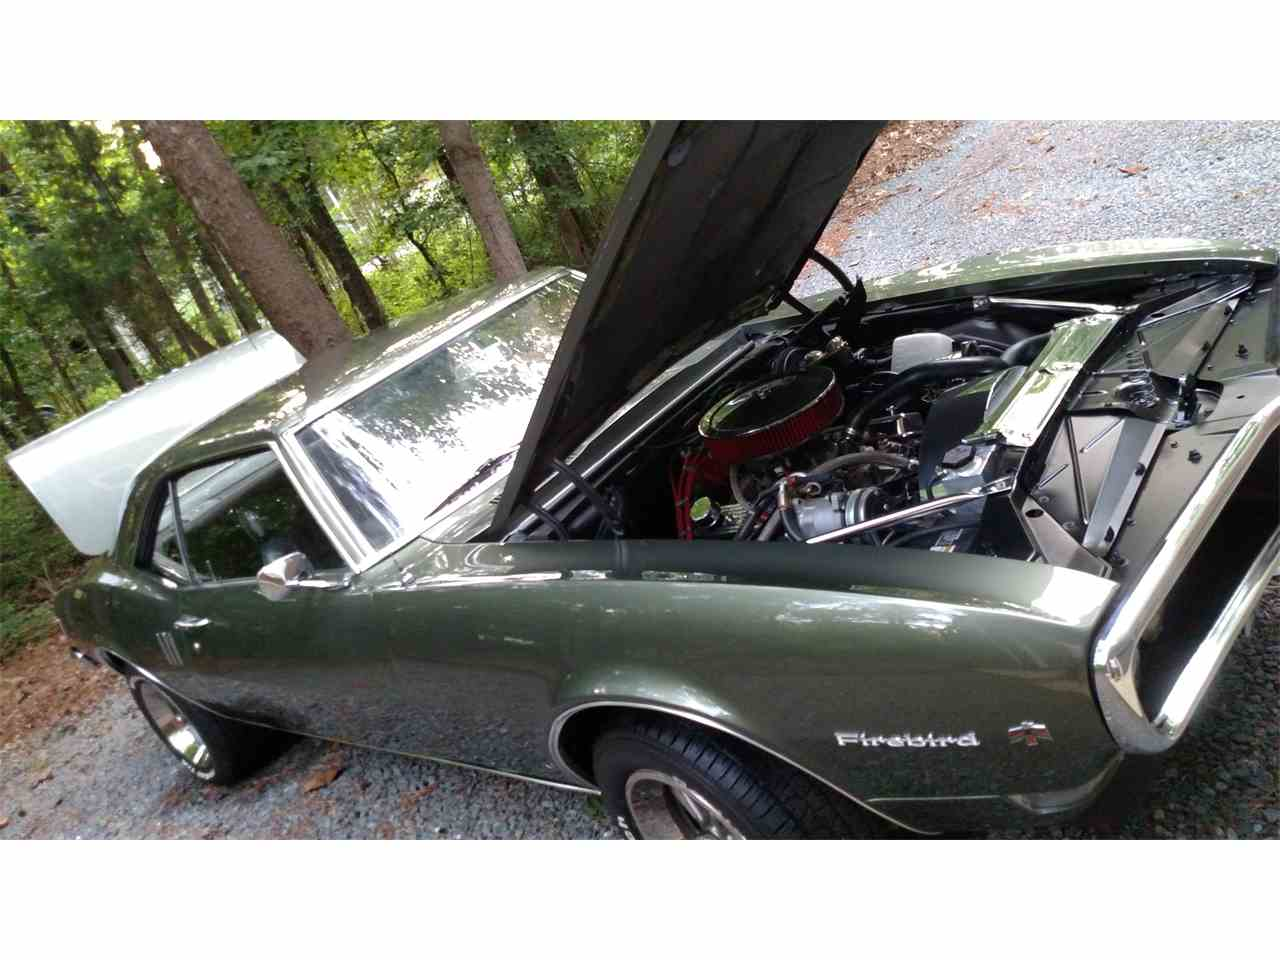 Large Picture of Classic 1968 Pontiac Firebird located in Lusby Maryland - $31,495.00 Offered by a Private Seller - NI9T